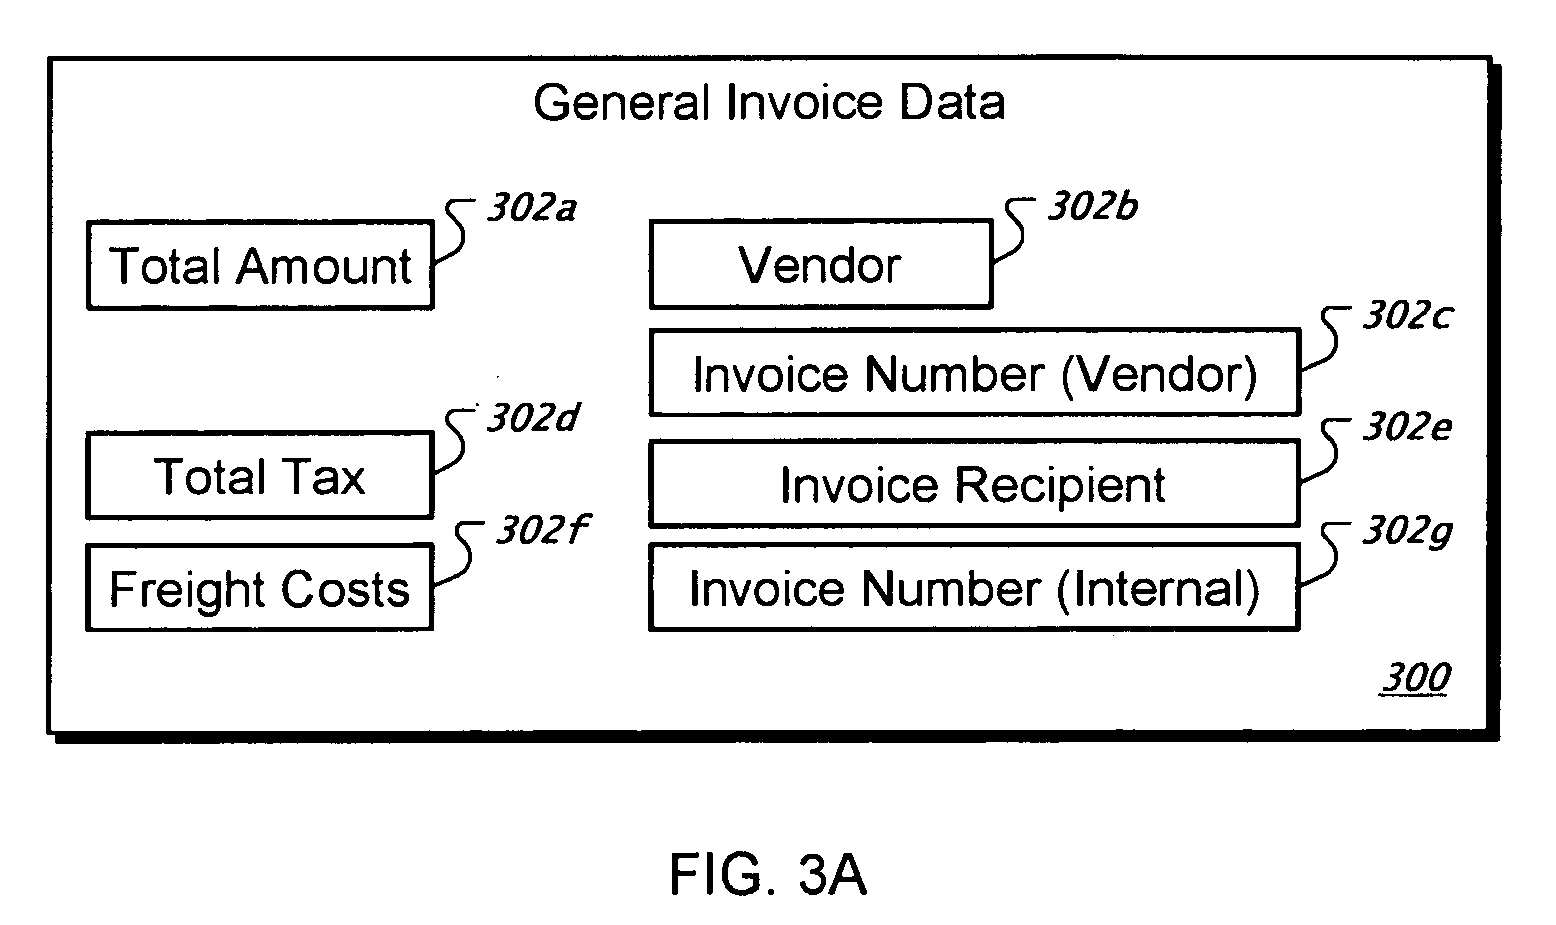 Vendor Invoice Template Patent Us  Invoice Exception Management  Google Patenti Best Free Invoice Template with Invoices Management Pdf Patent Drawing Scan Receipts Software